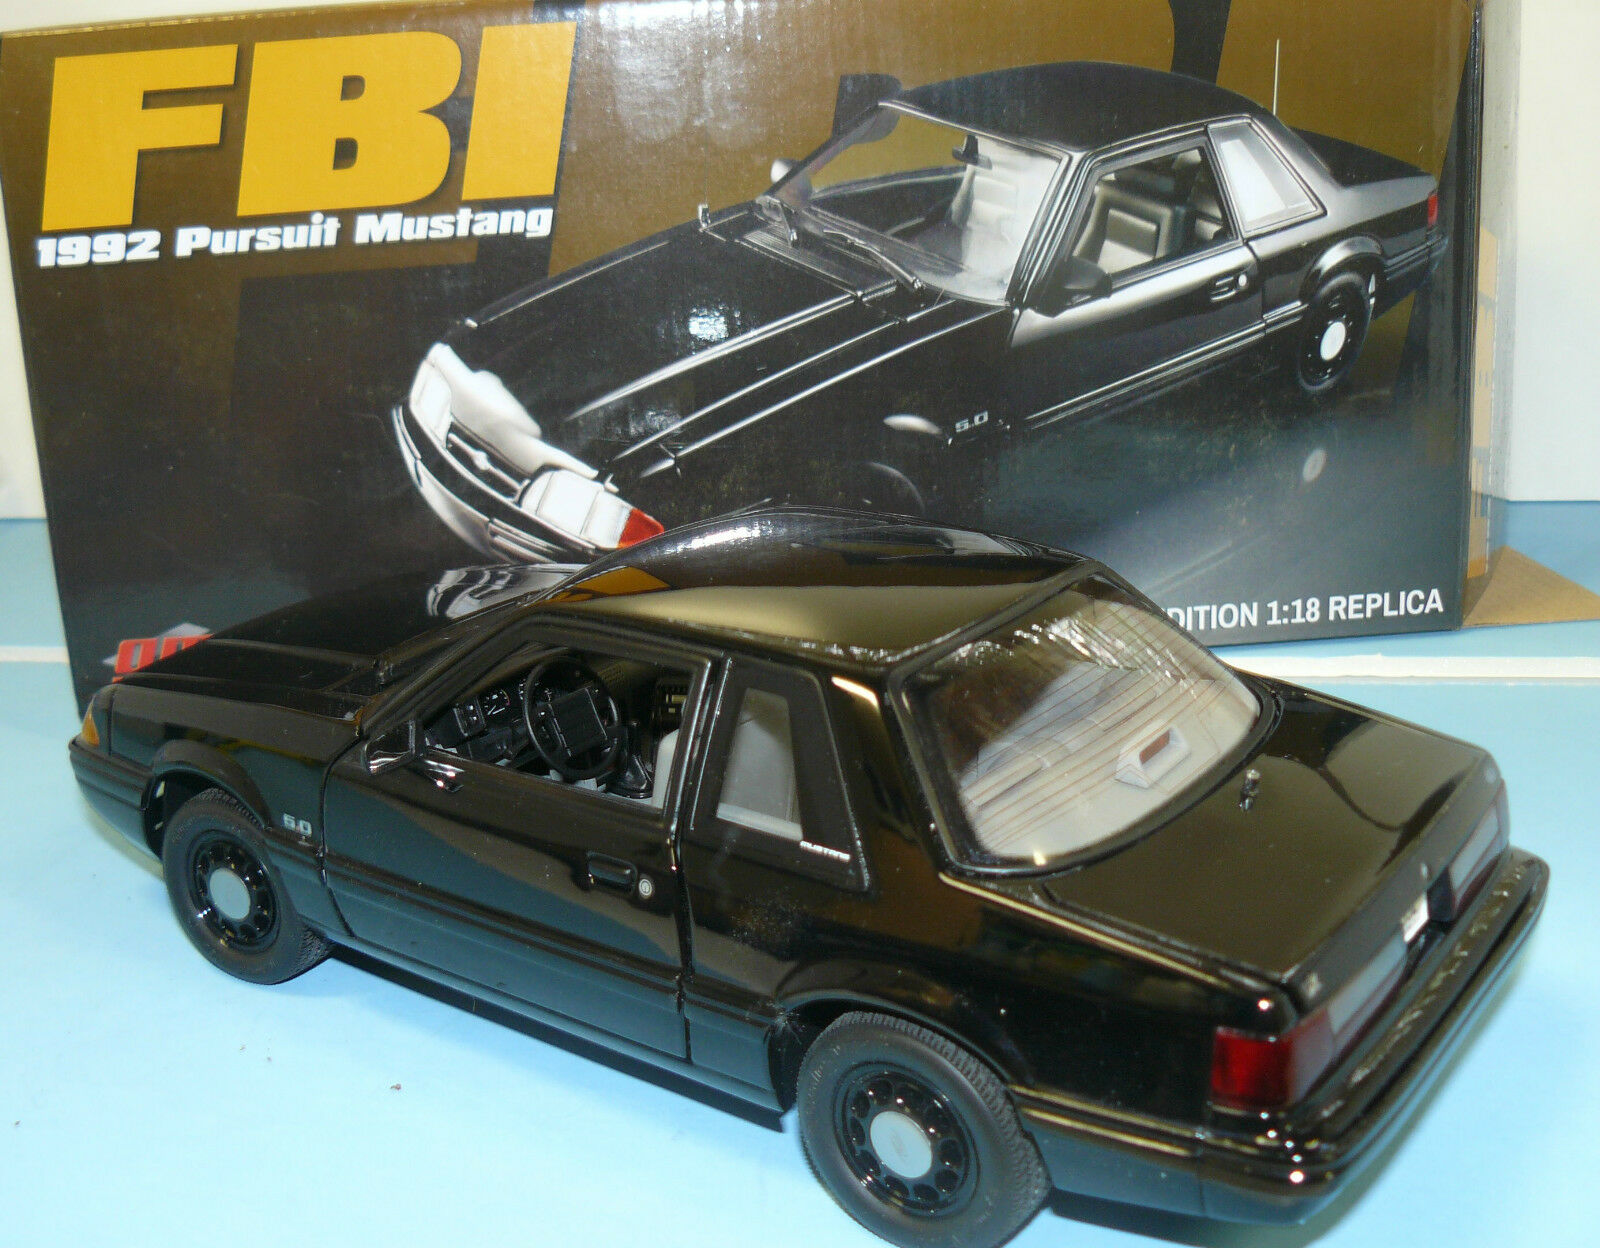 1 18  ACME 1992 Mustang FBI persuit car, new in the box  1 of 948